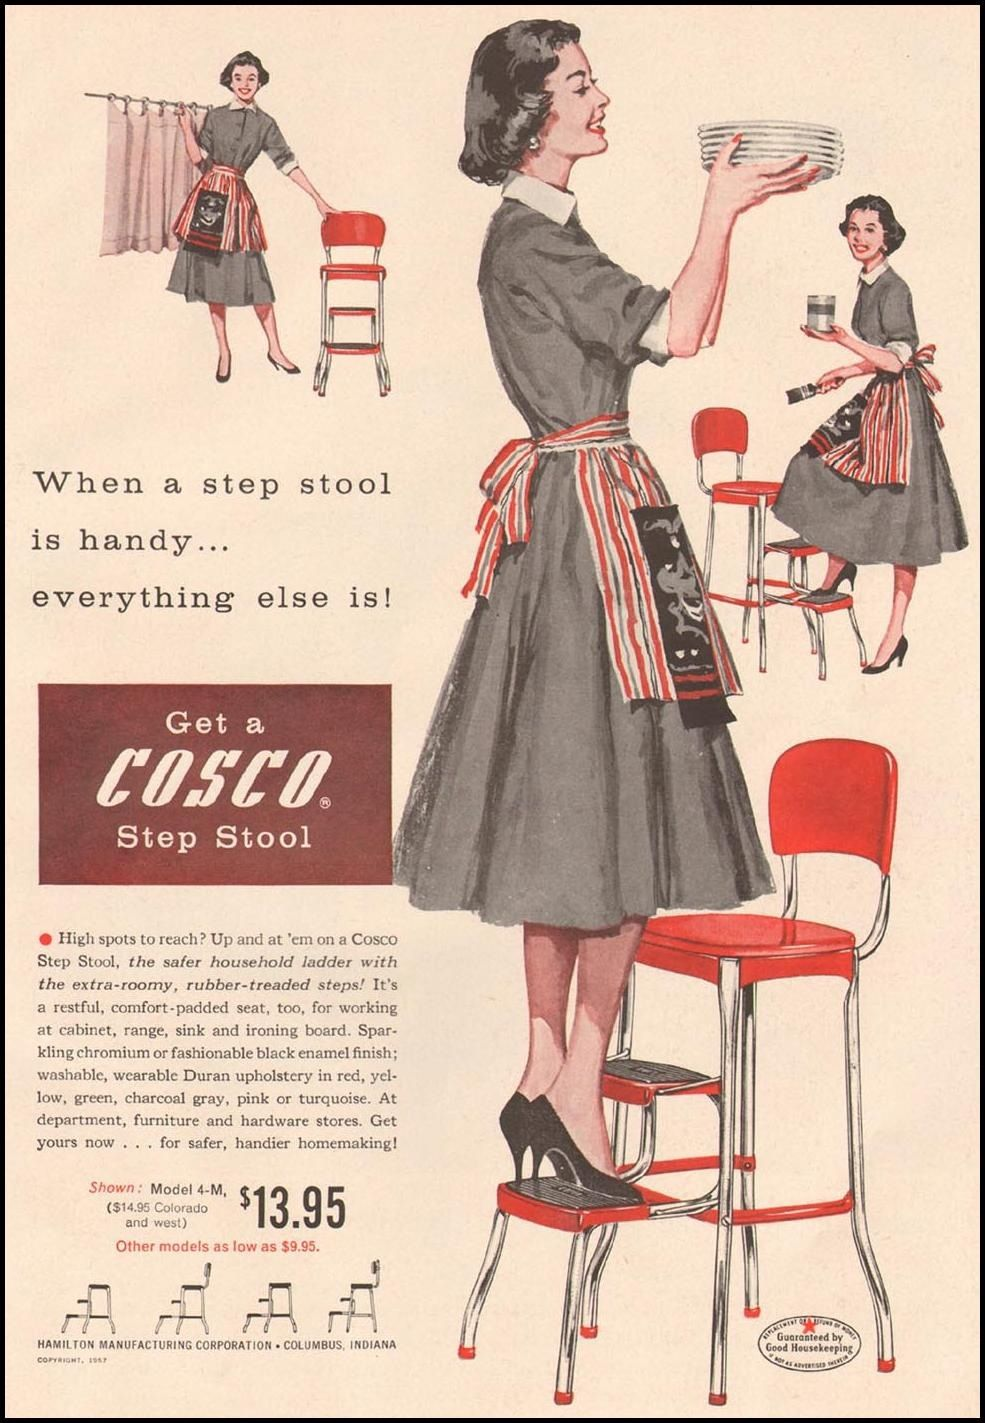 Cosco step stool chair - Get A Cosco Step Stool 1957 Advertisement